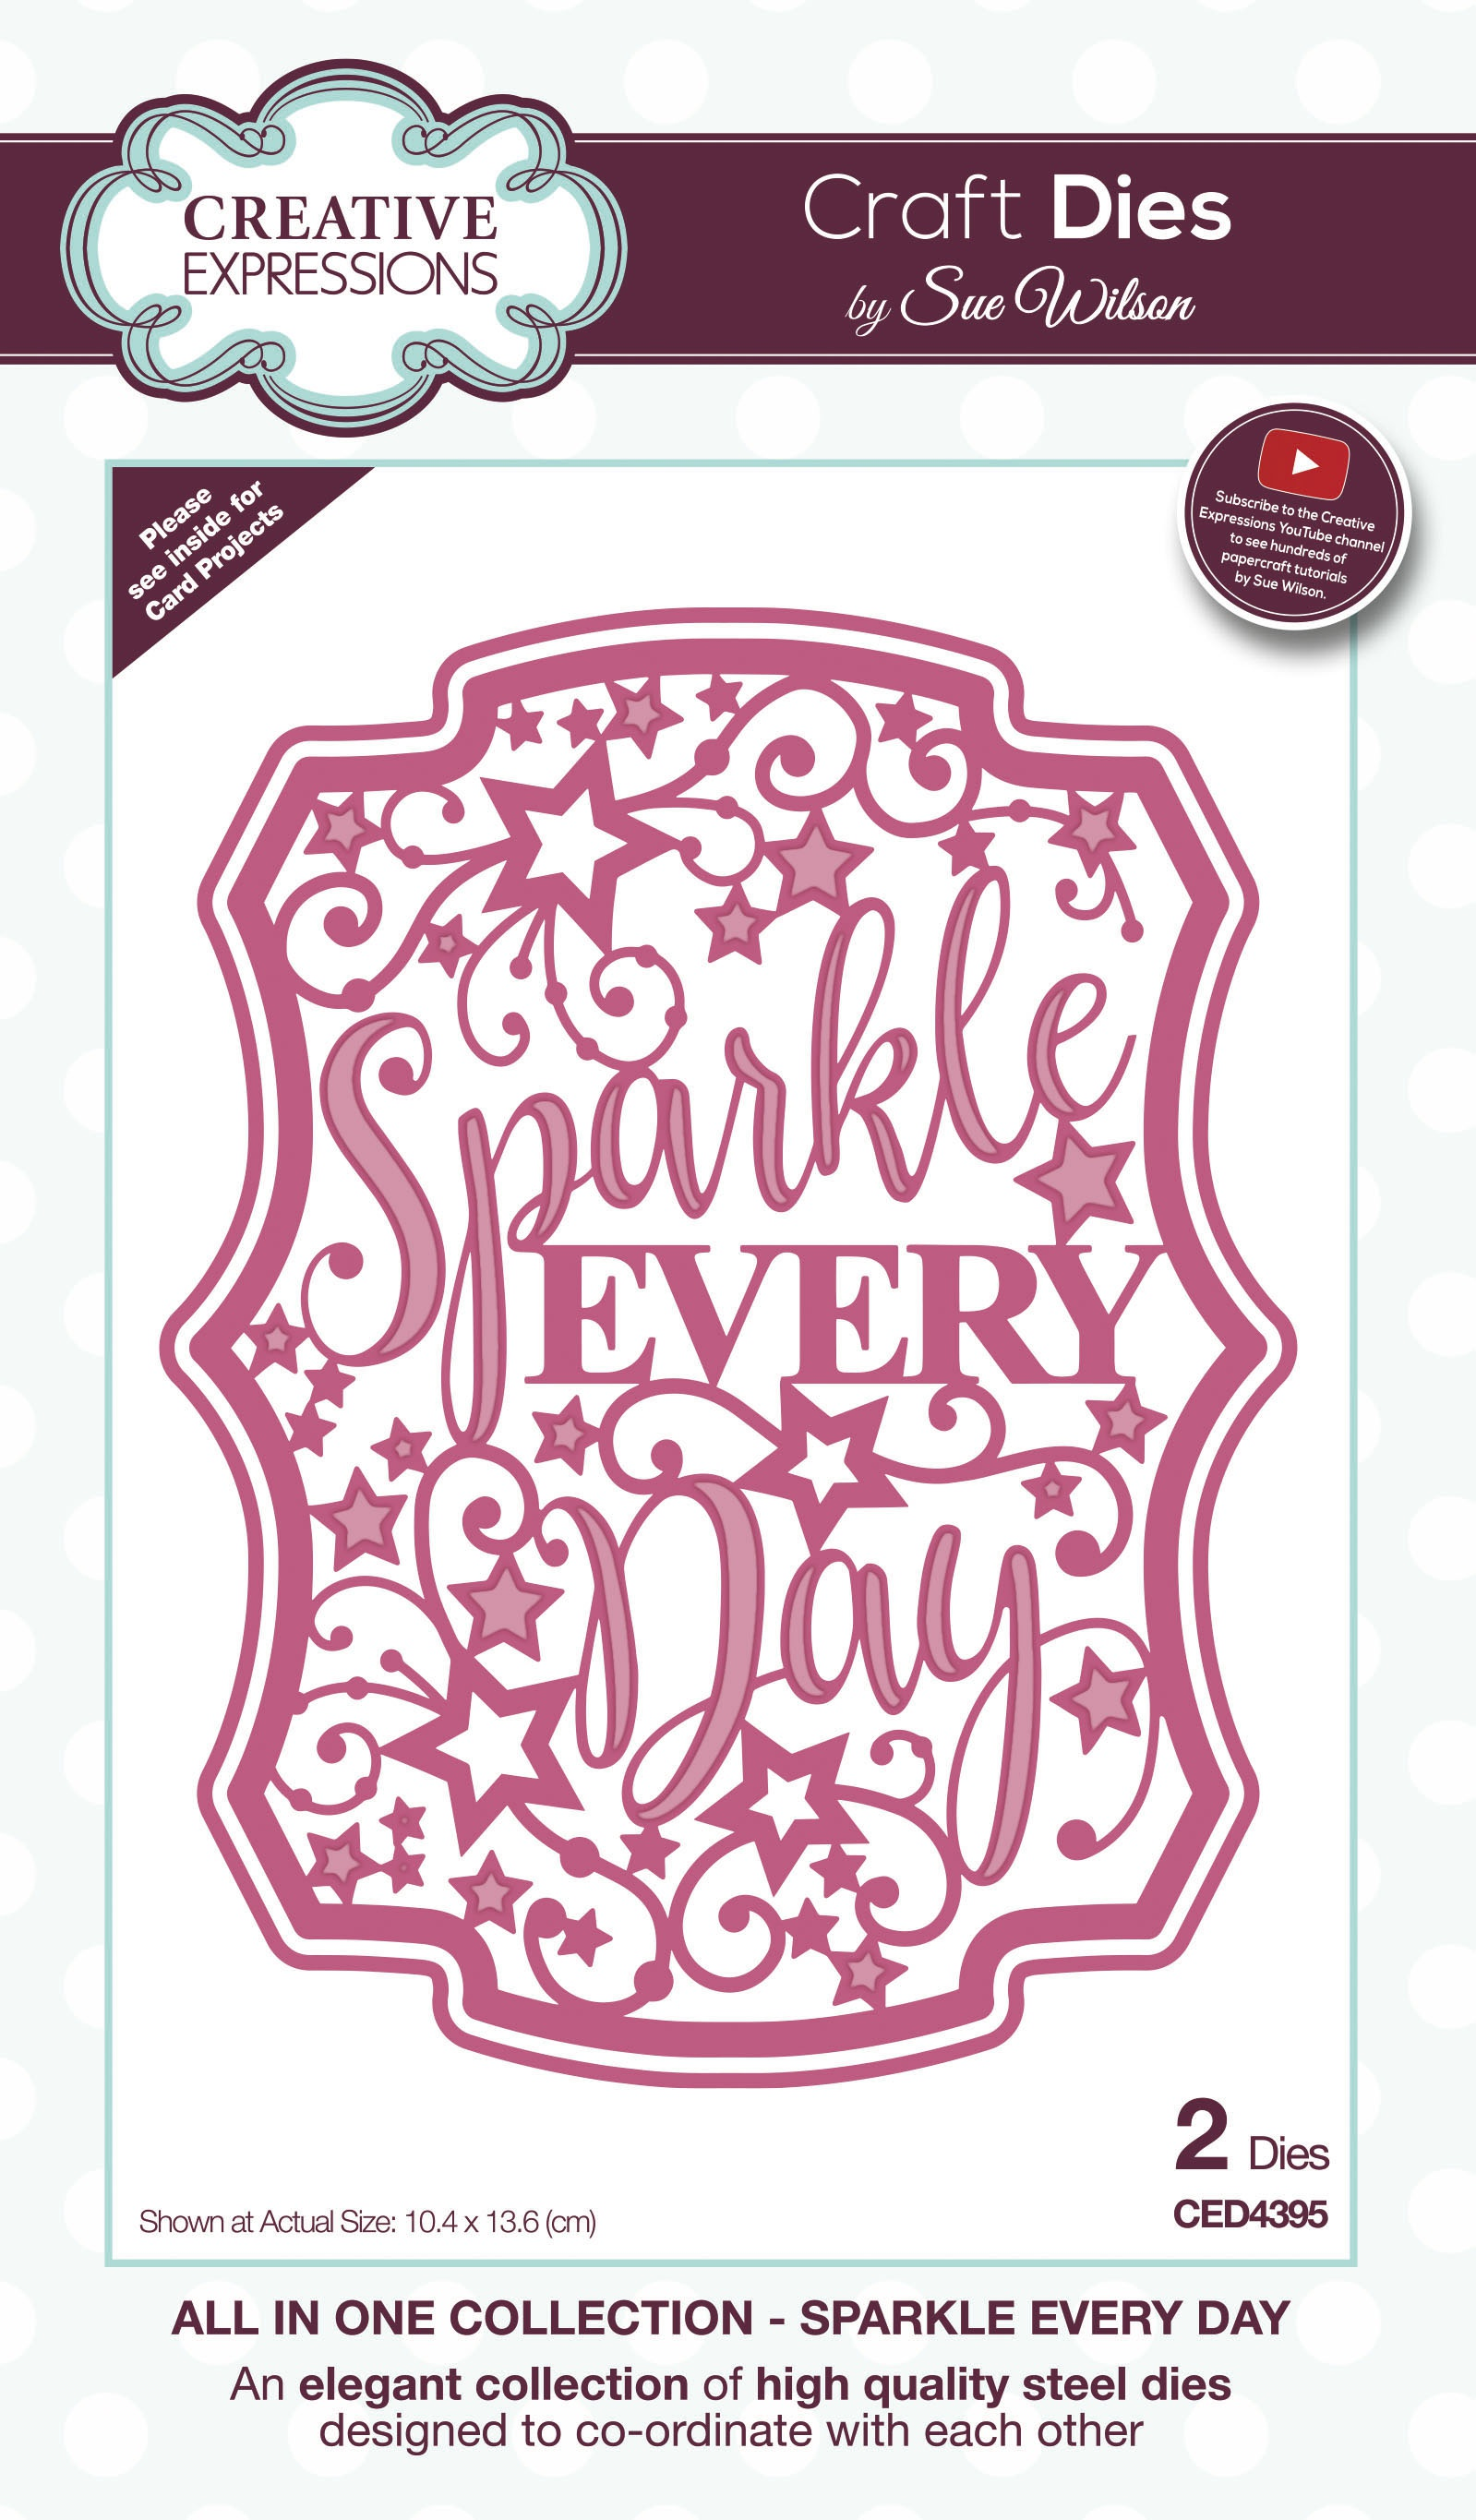 Creative Expressions Craft Dies By Sue Wilson-All In One-Sparkle Every Day